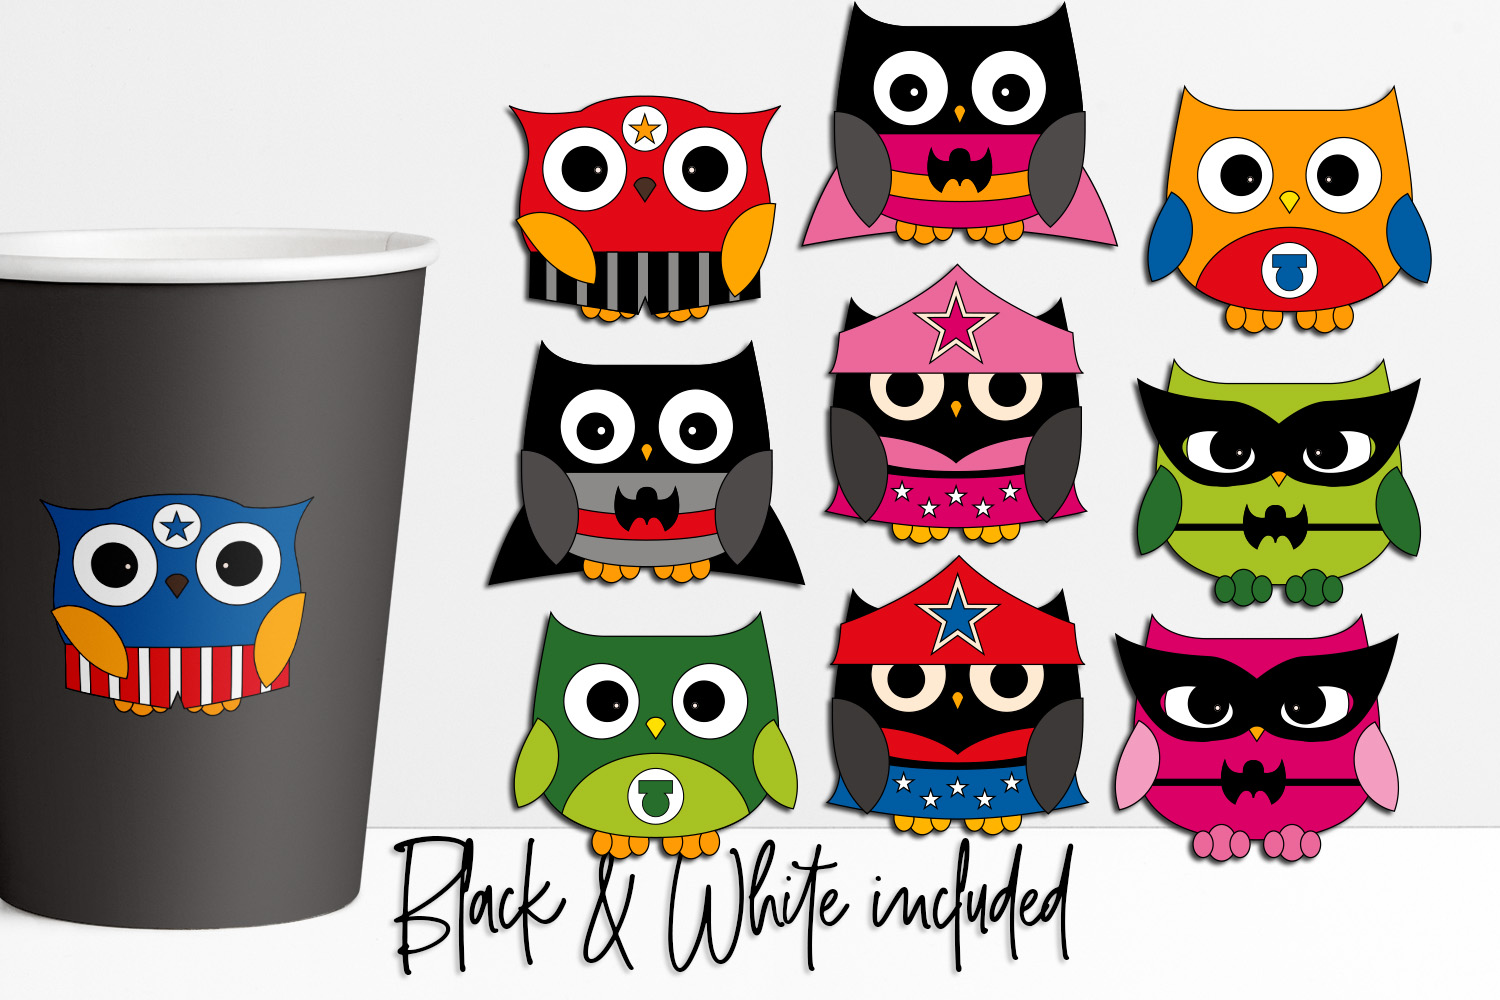 Download Free Superhero Owls Graphic By Darrakadisha Creative Fabrica for Cricut Explore, Silhouette and other cutting machines.